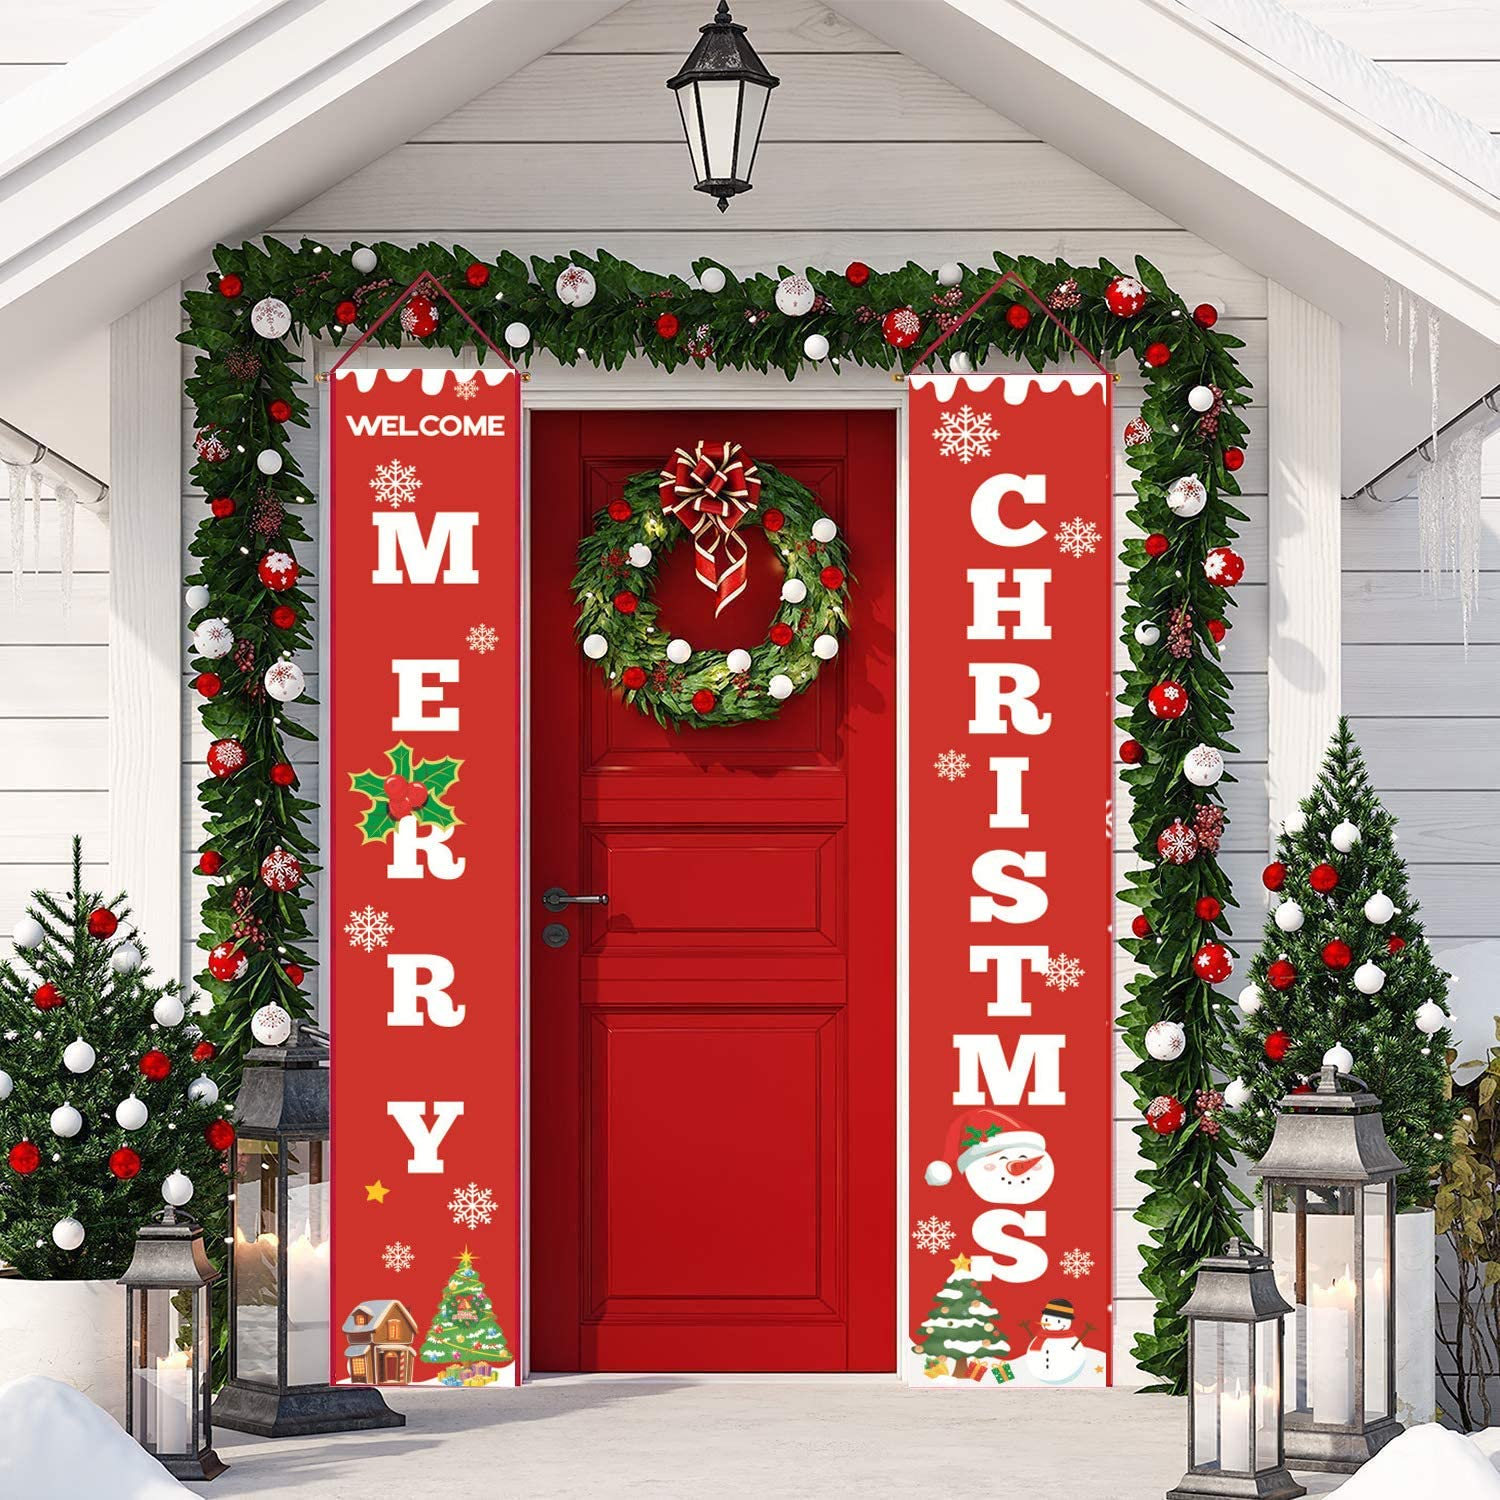 MAFENT Christmas Door Banner Merry Christmas Welcome Christmas Porch Sign Xmas Decor Christmas Indoor Outdoor Sign for Home Decor (Red,Green,White)